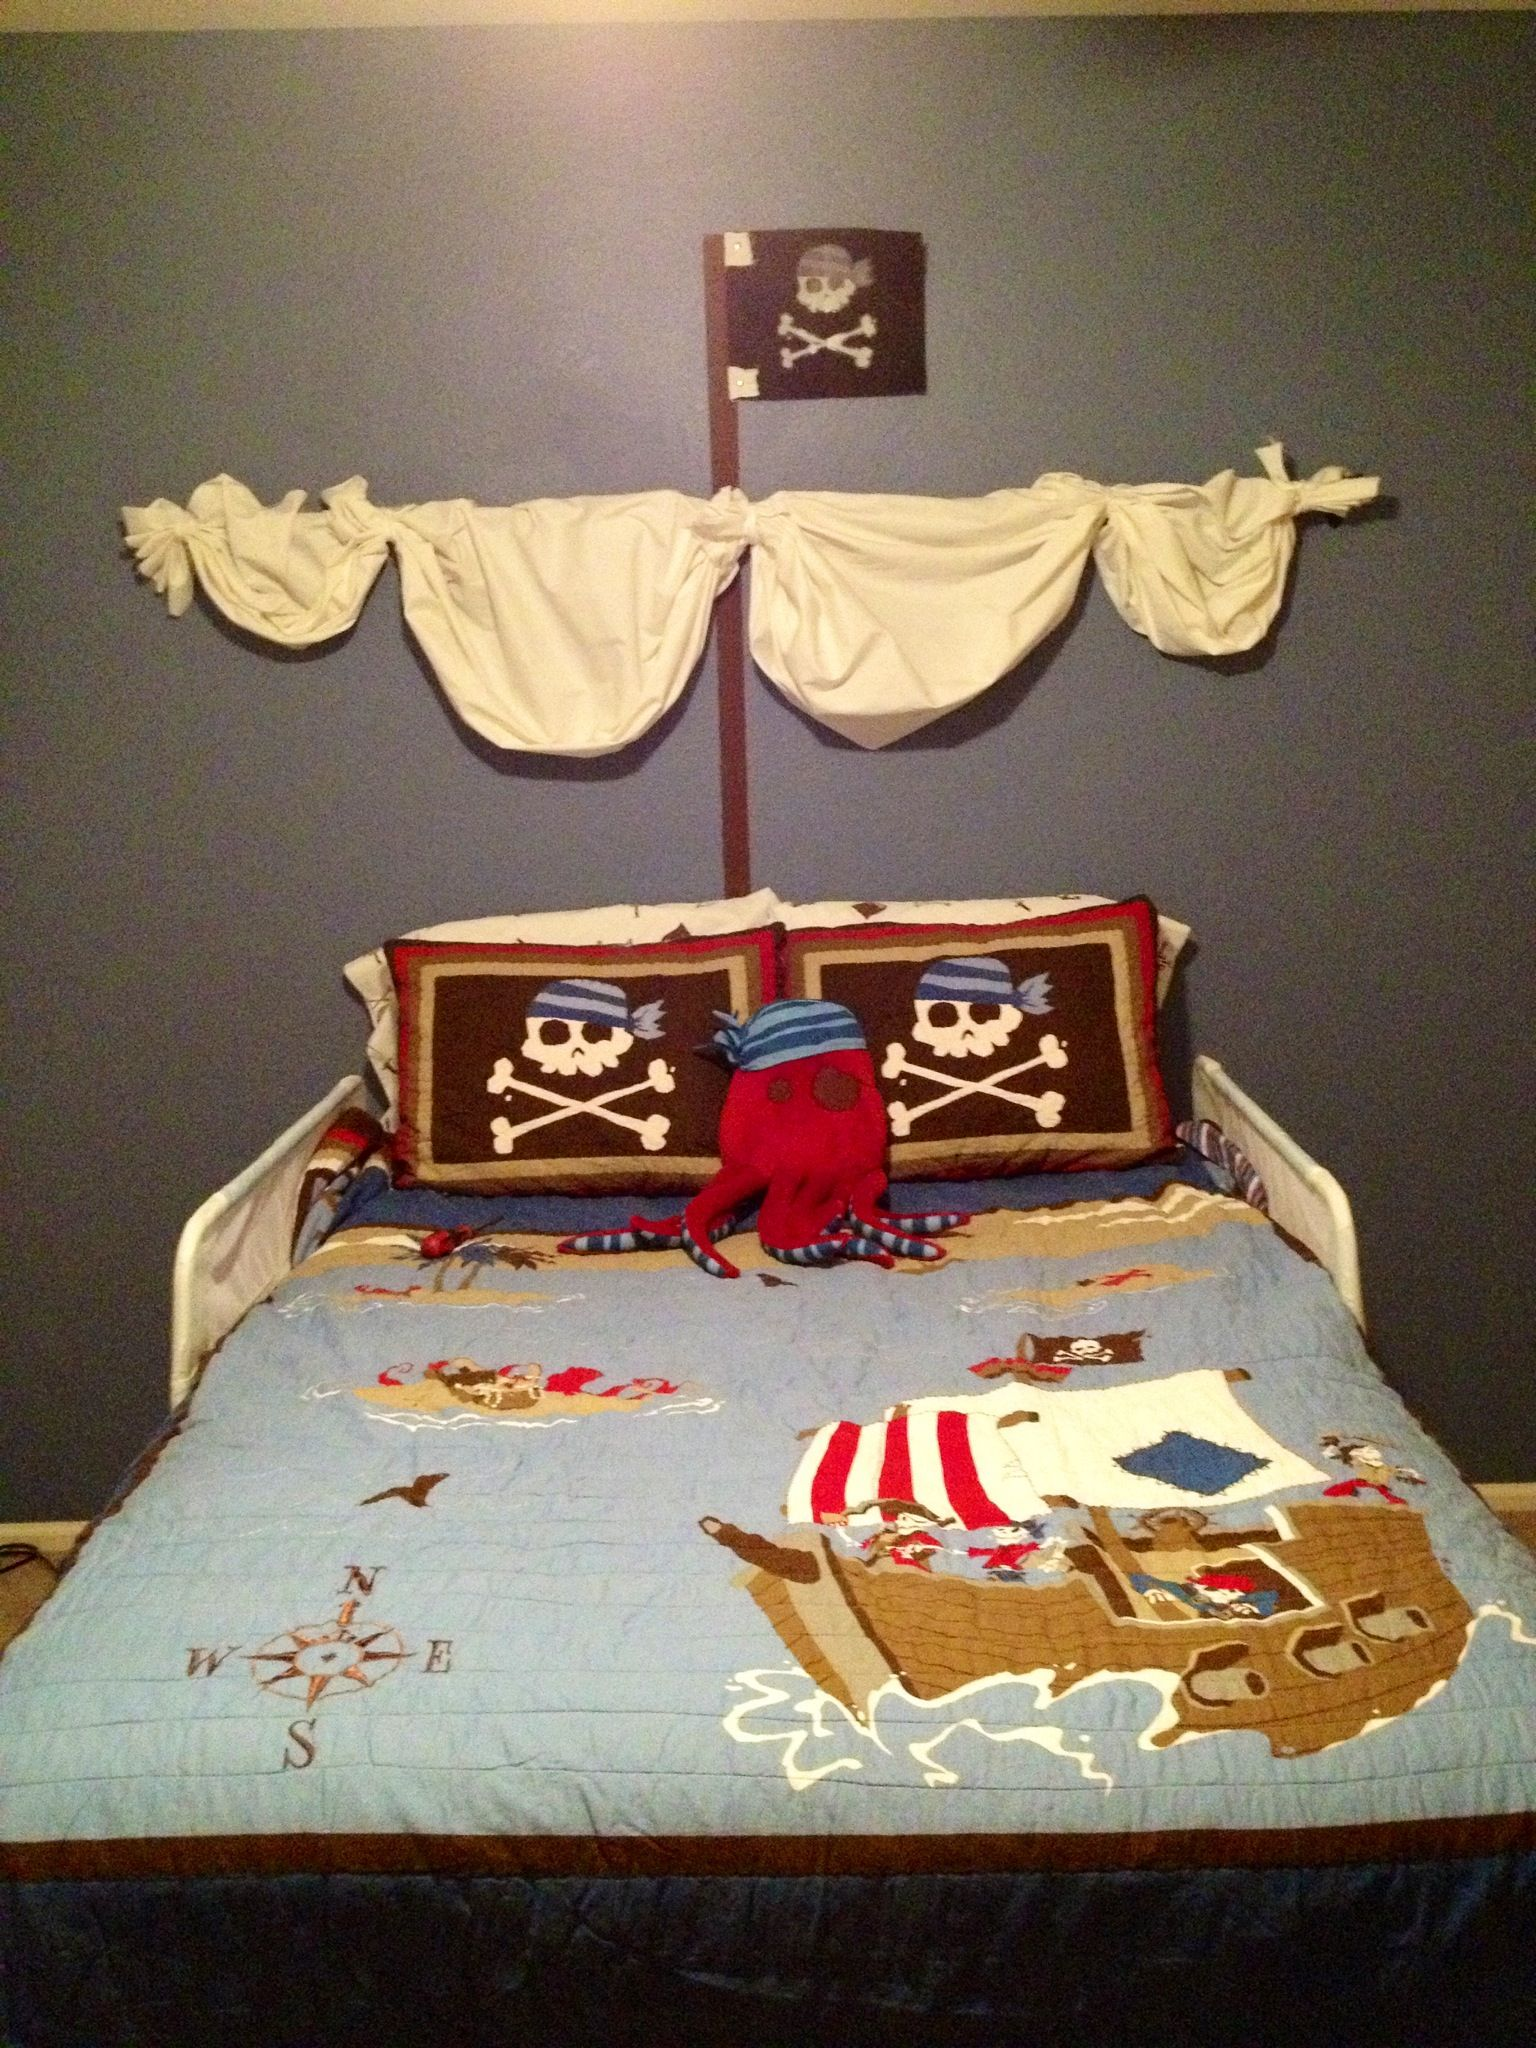 Pirate Bedroom Decorating Pirate Ship Headboardperfect For A Peter Pan Bedroom